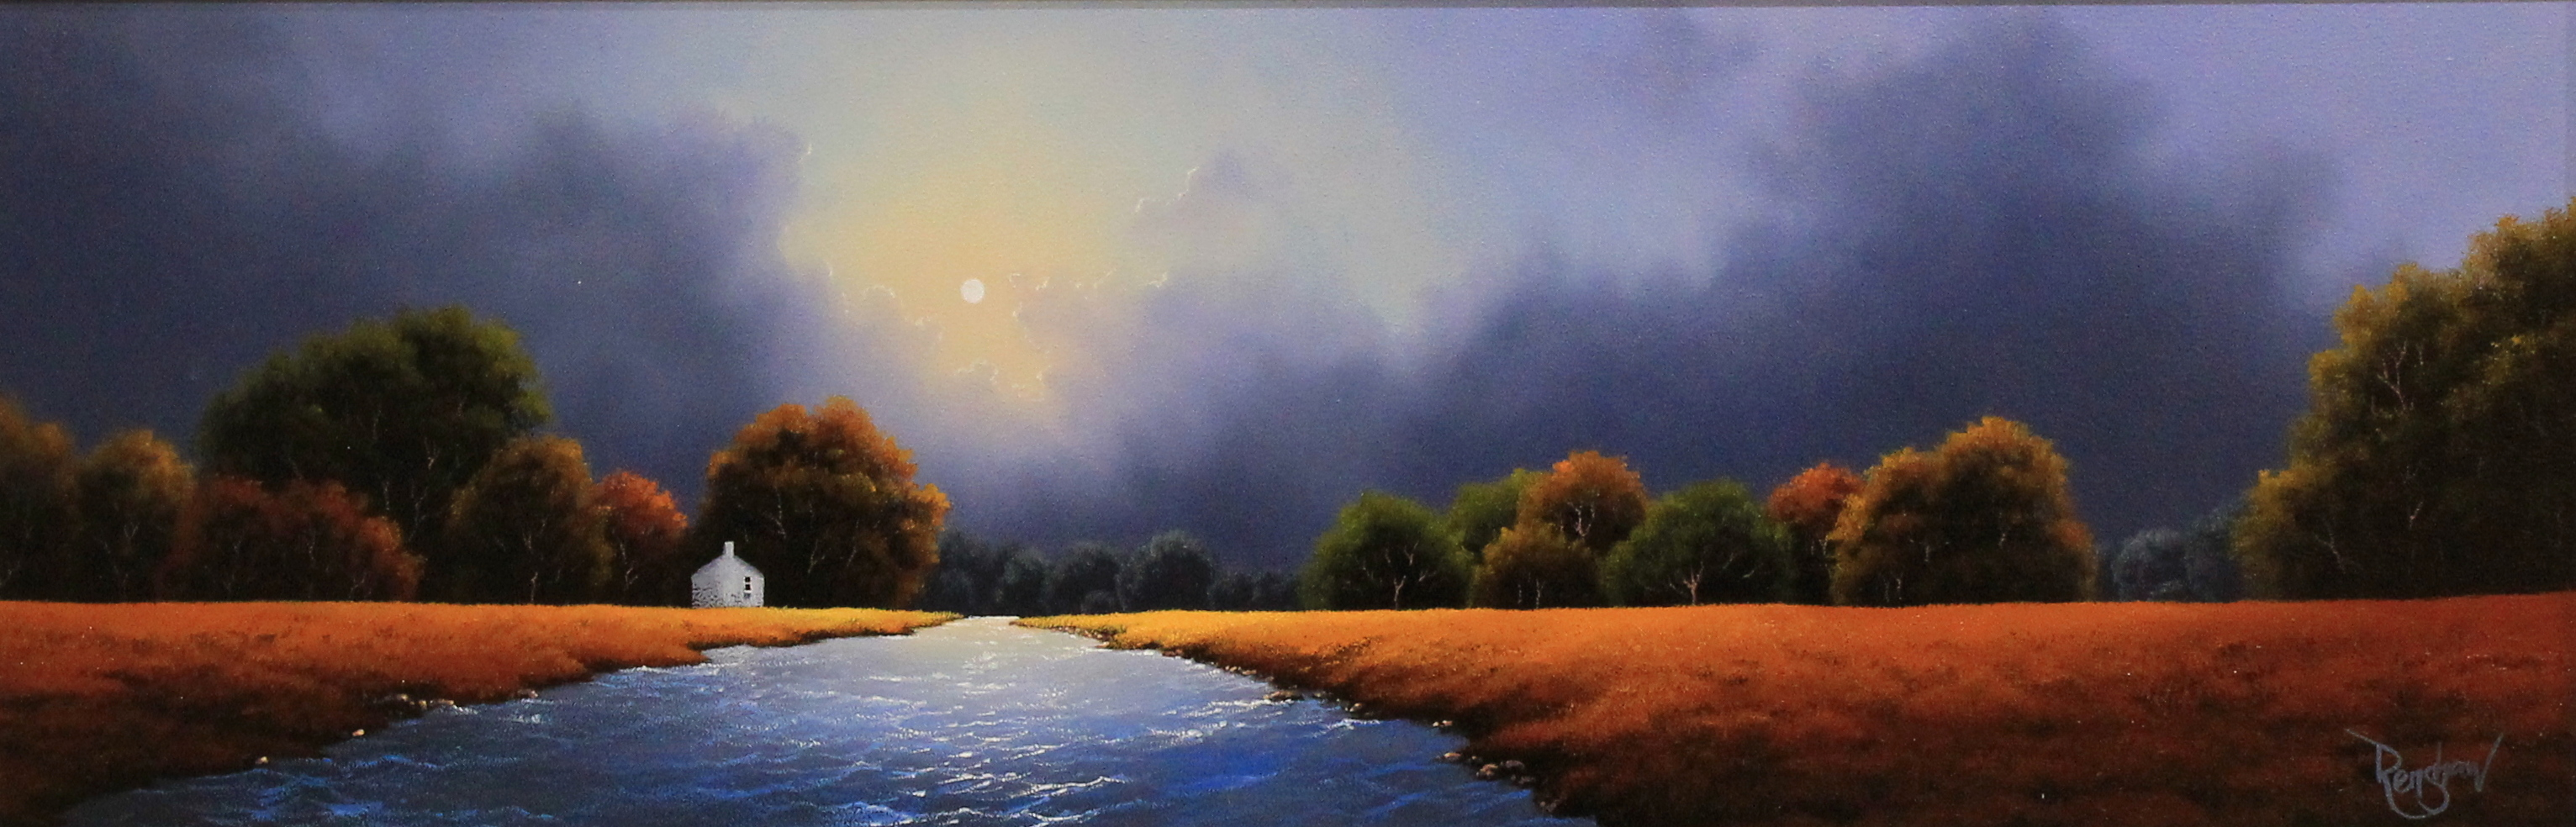 An original oil painting by David Renshaw inspired by the Lake District. A river begins in the foreground and flows off into the distance with an orange toned meadow either side. There is a line of trees and shrubbery, varying in distances and colours, running across the landscape. To the left of the river within the line of trees is a small white house with a chimney and a dark window. The moon sits in the sky above dark clouds inline with and illuminating the river below.